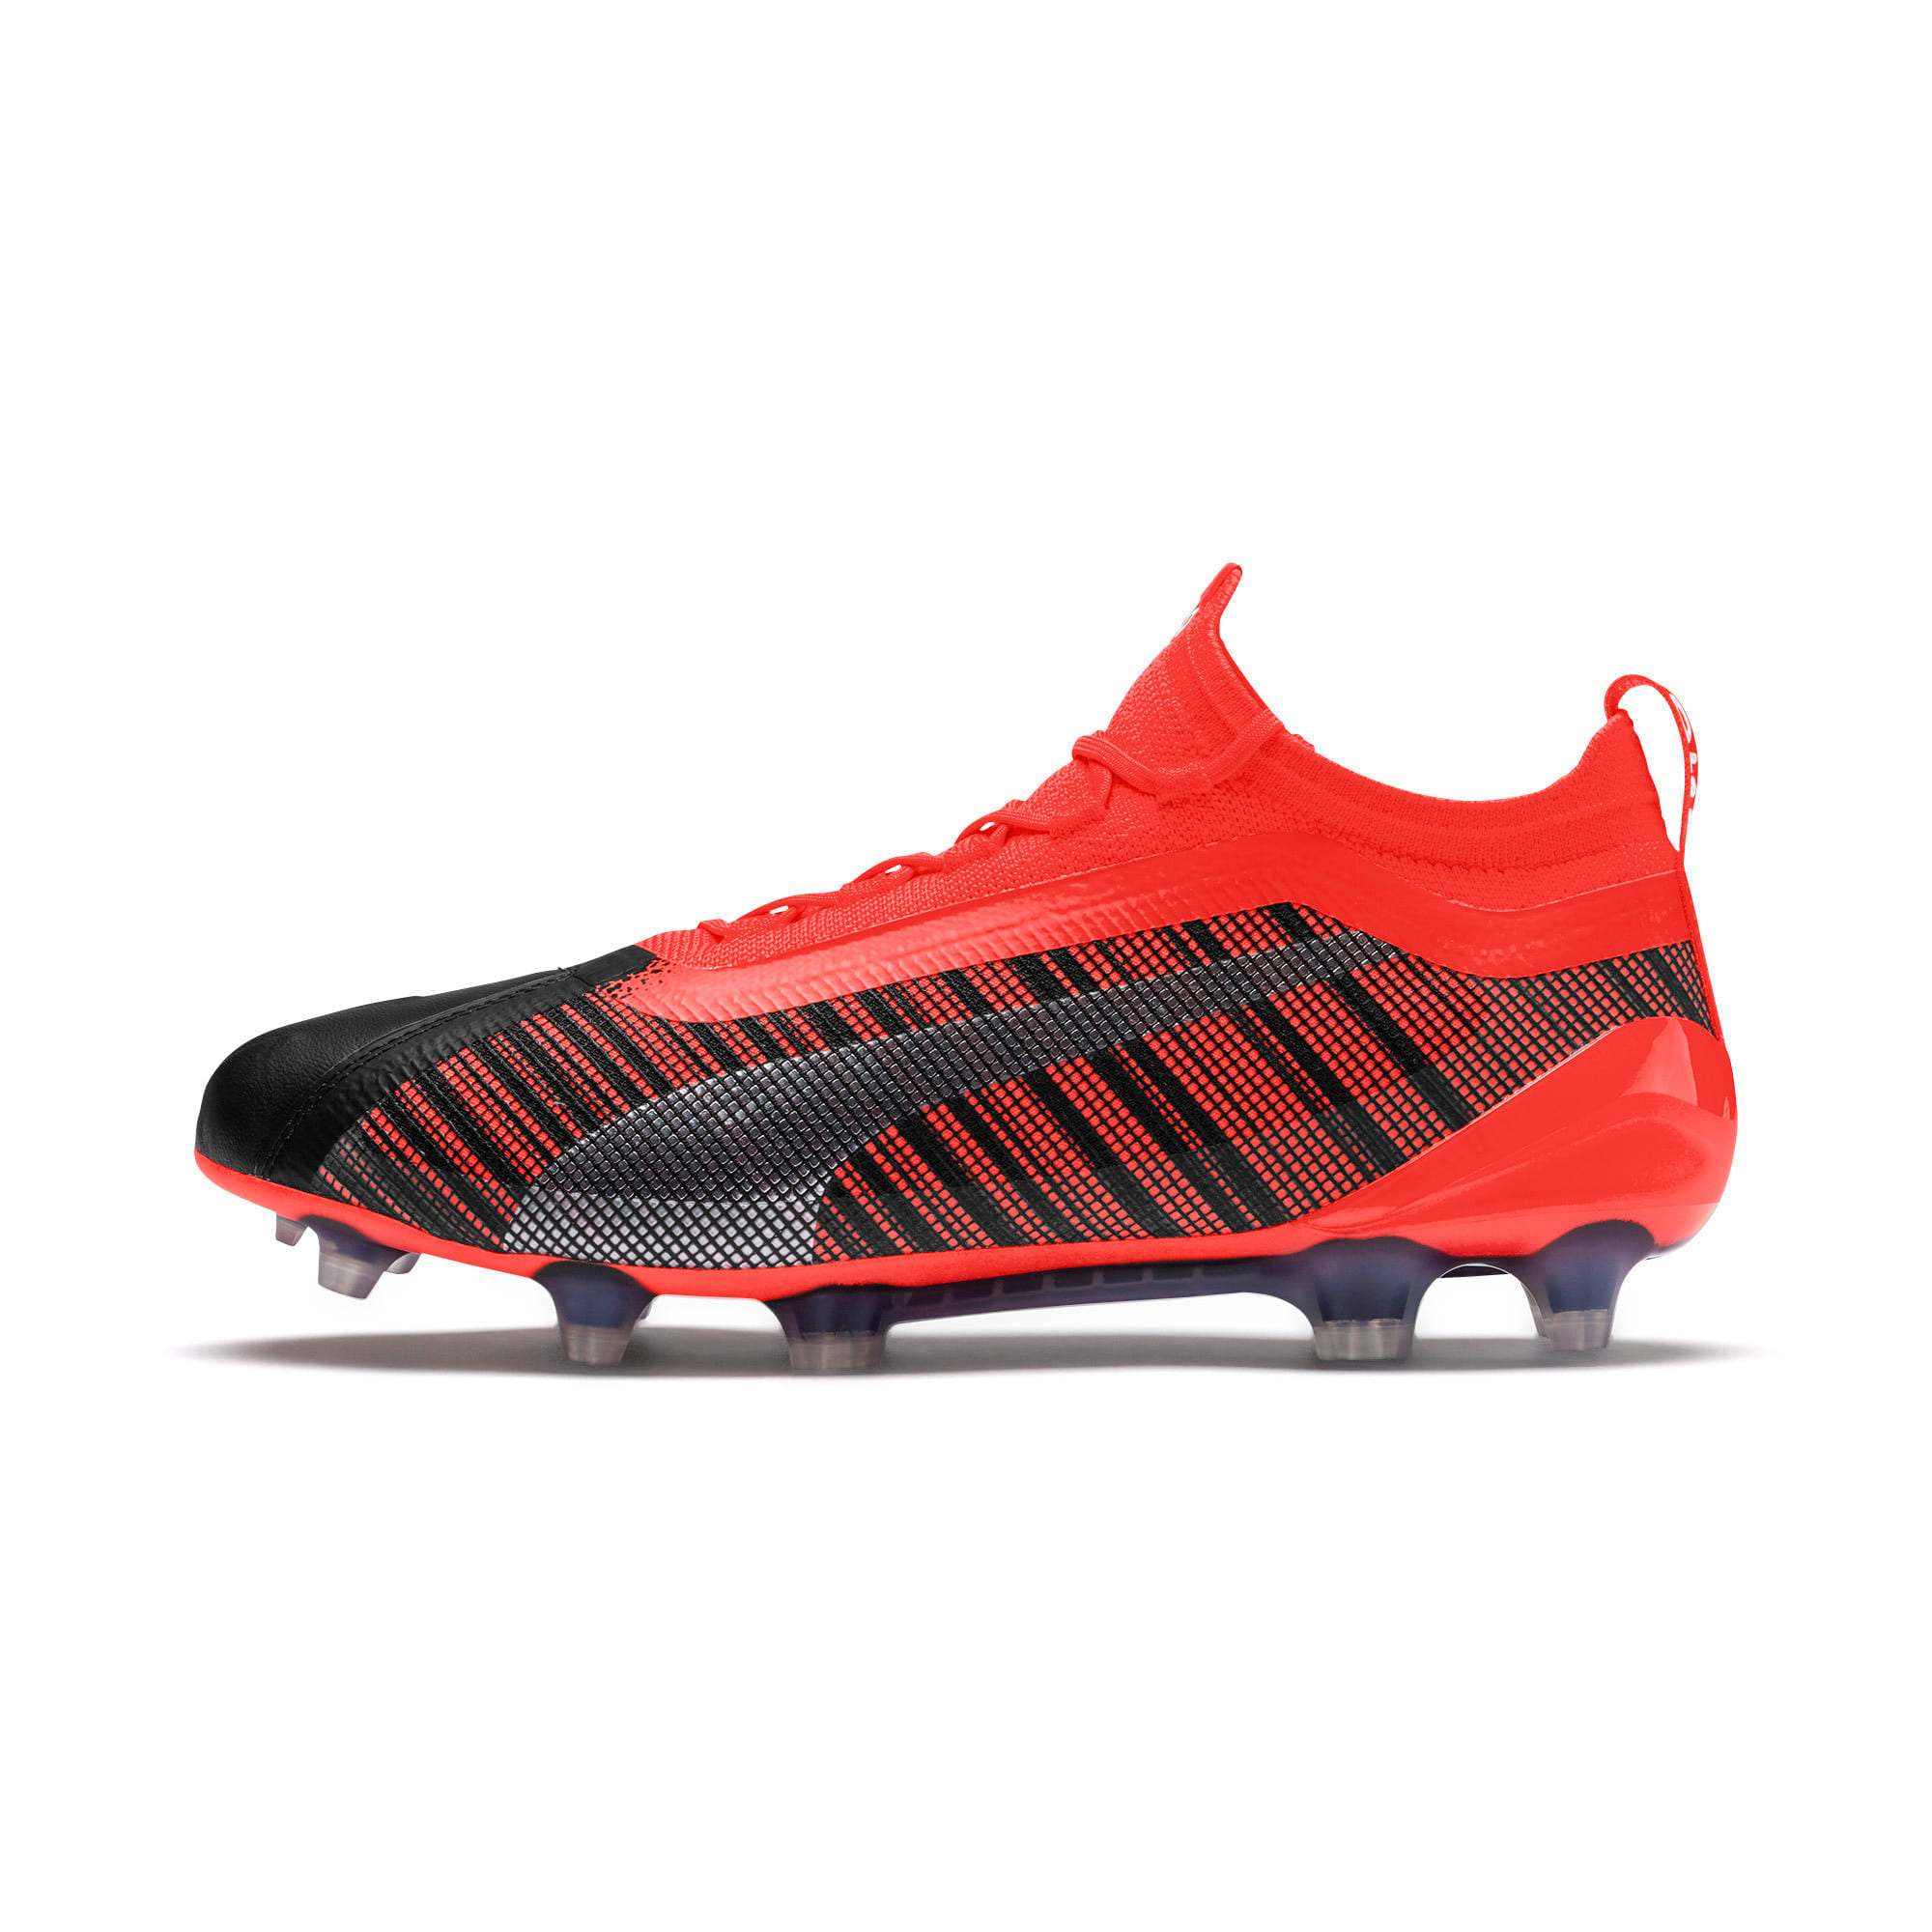 Thumbnail 1 of PUMA ONE 5.1 FG/AG Men's Soccer Cleats, Black-Nrgy Red-Aged Silver, medium